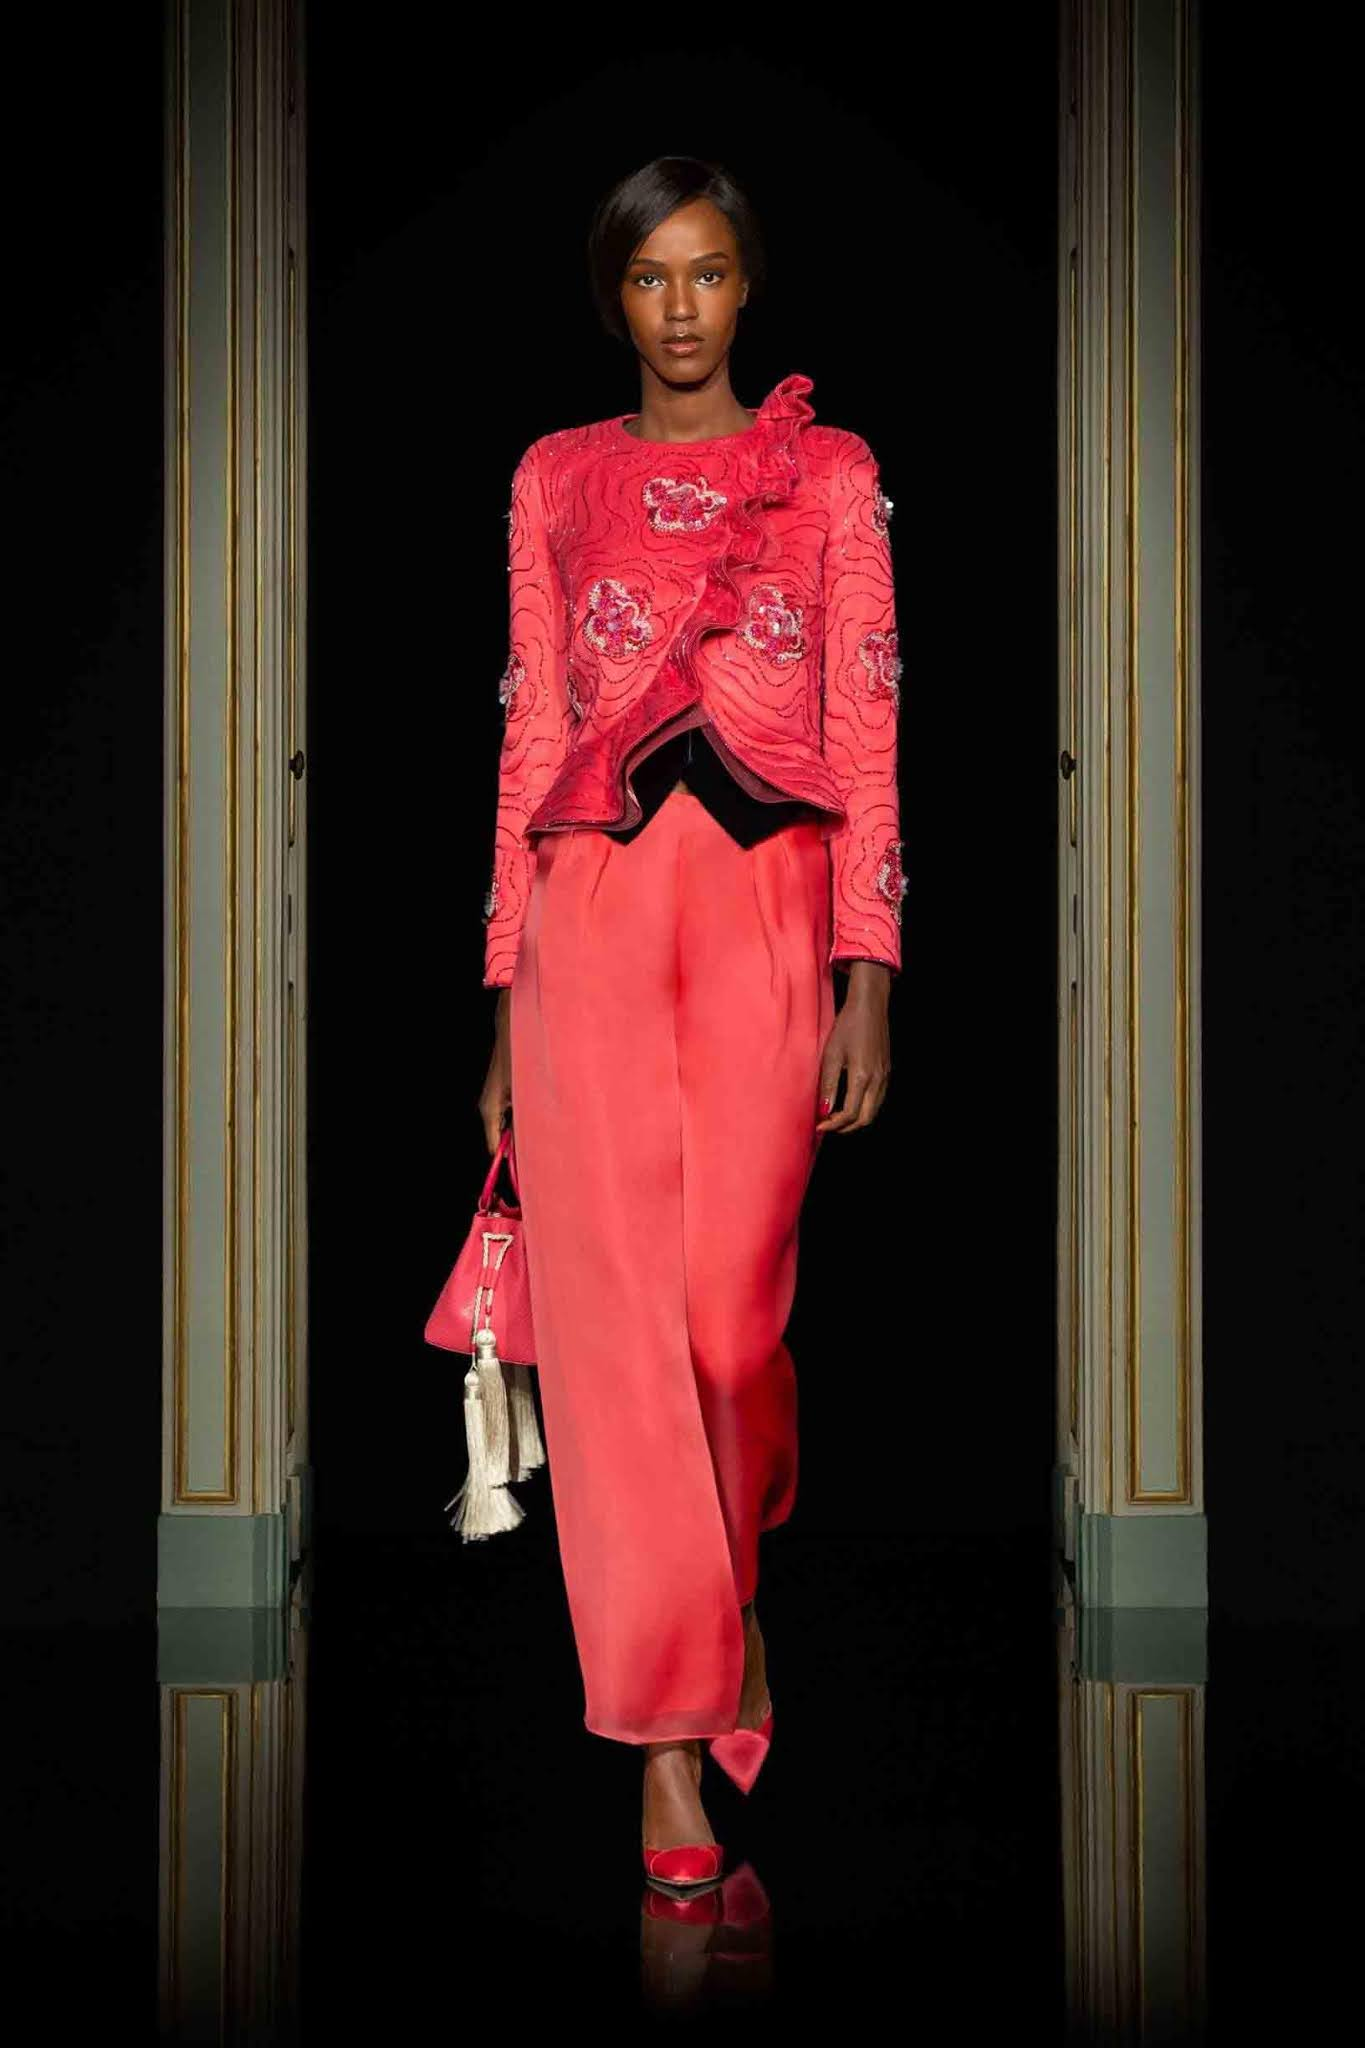 Armani's new collection based on the American Gigolo movie